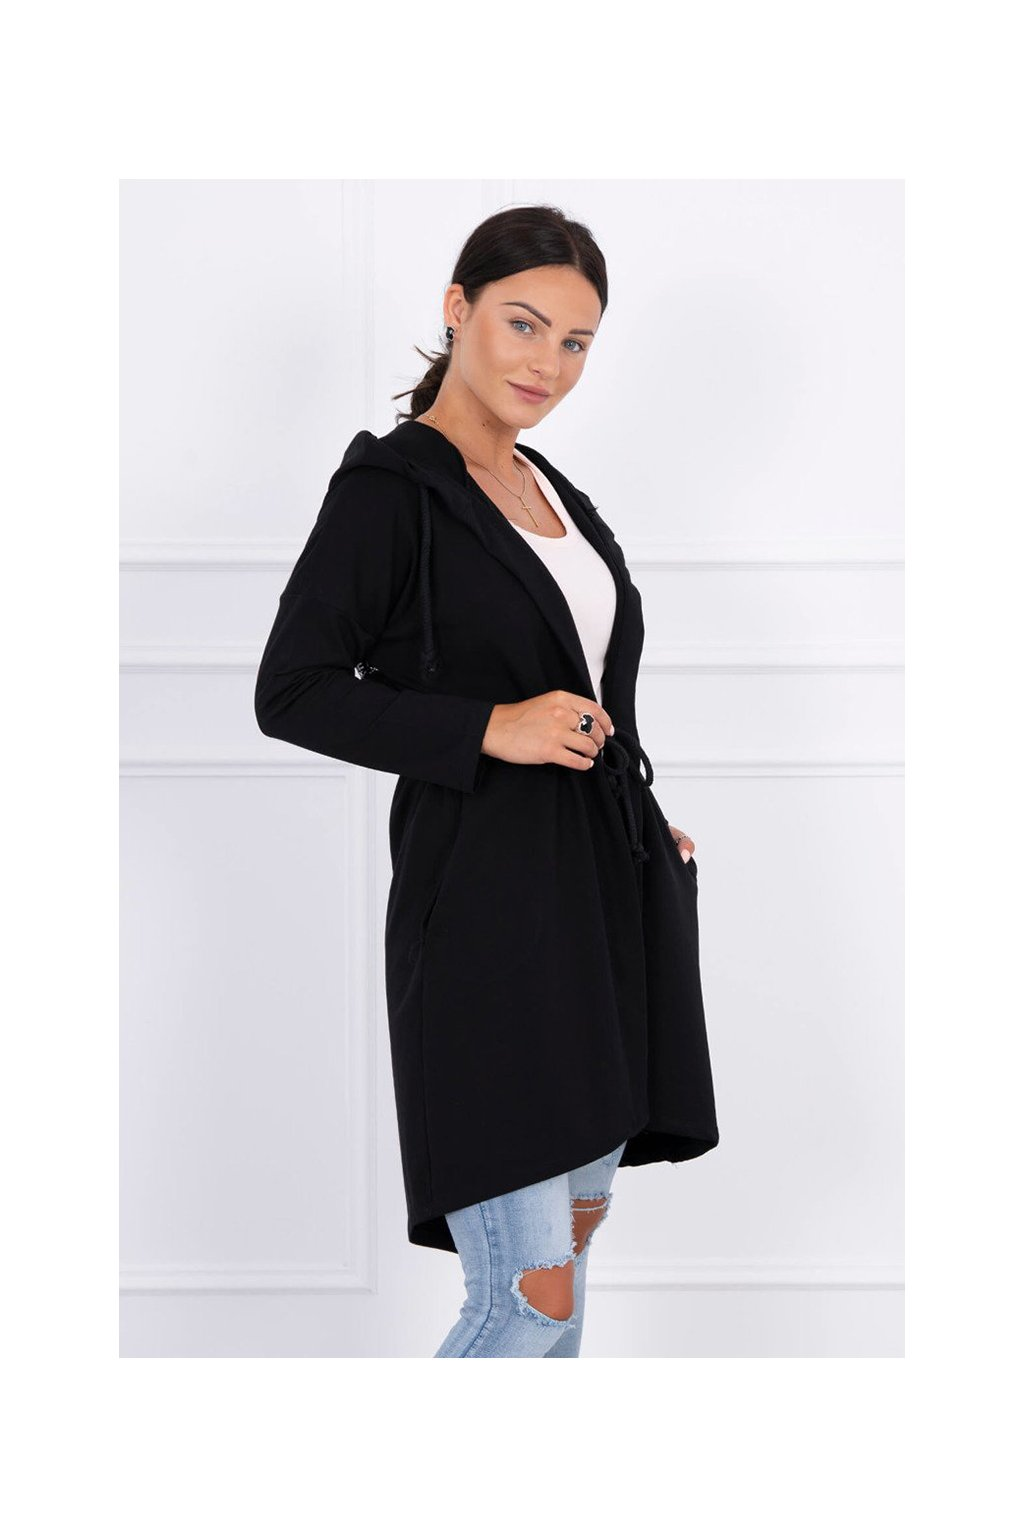 eng pl Coatee with longer back black 15361 3